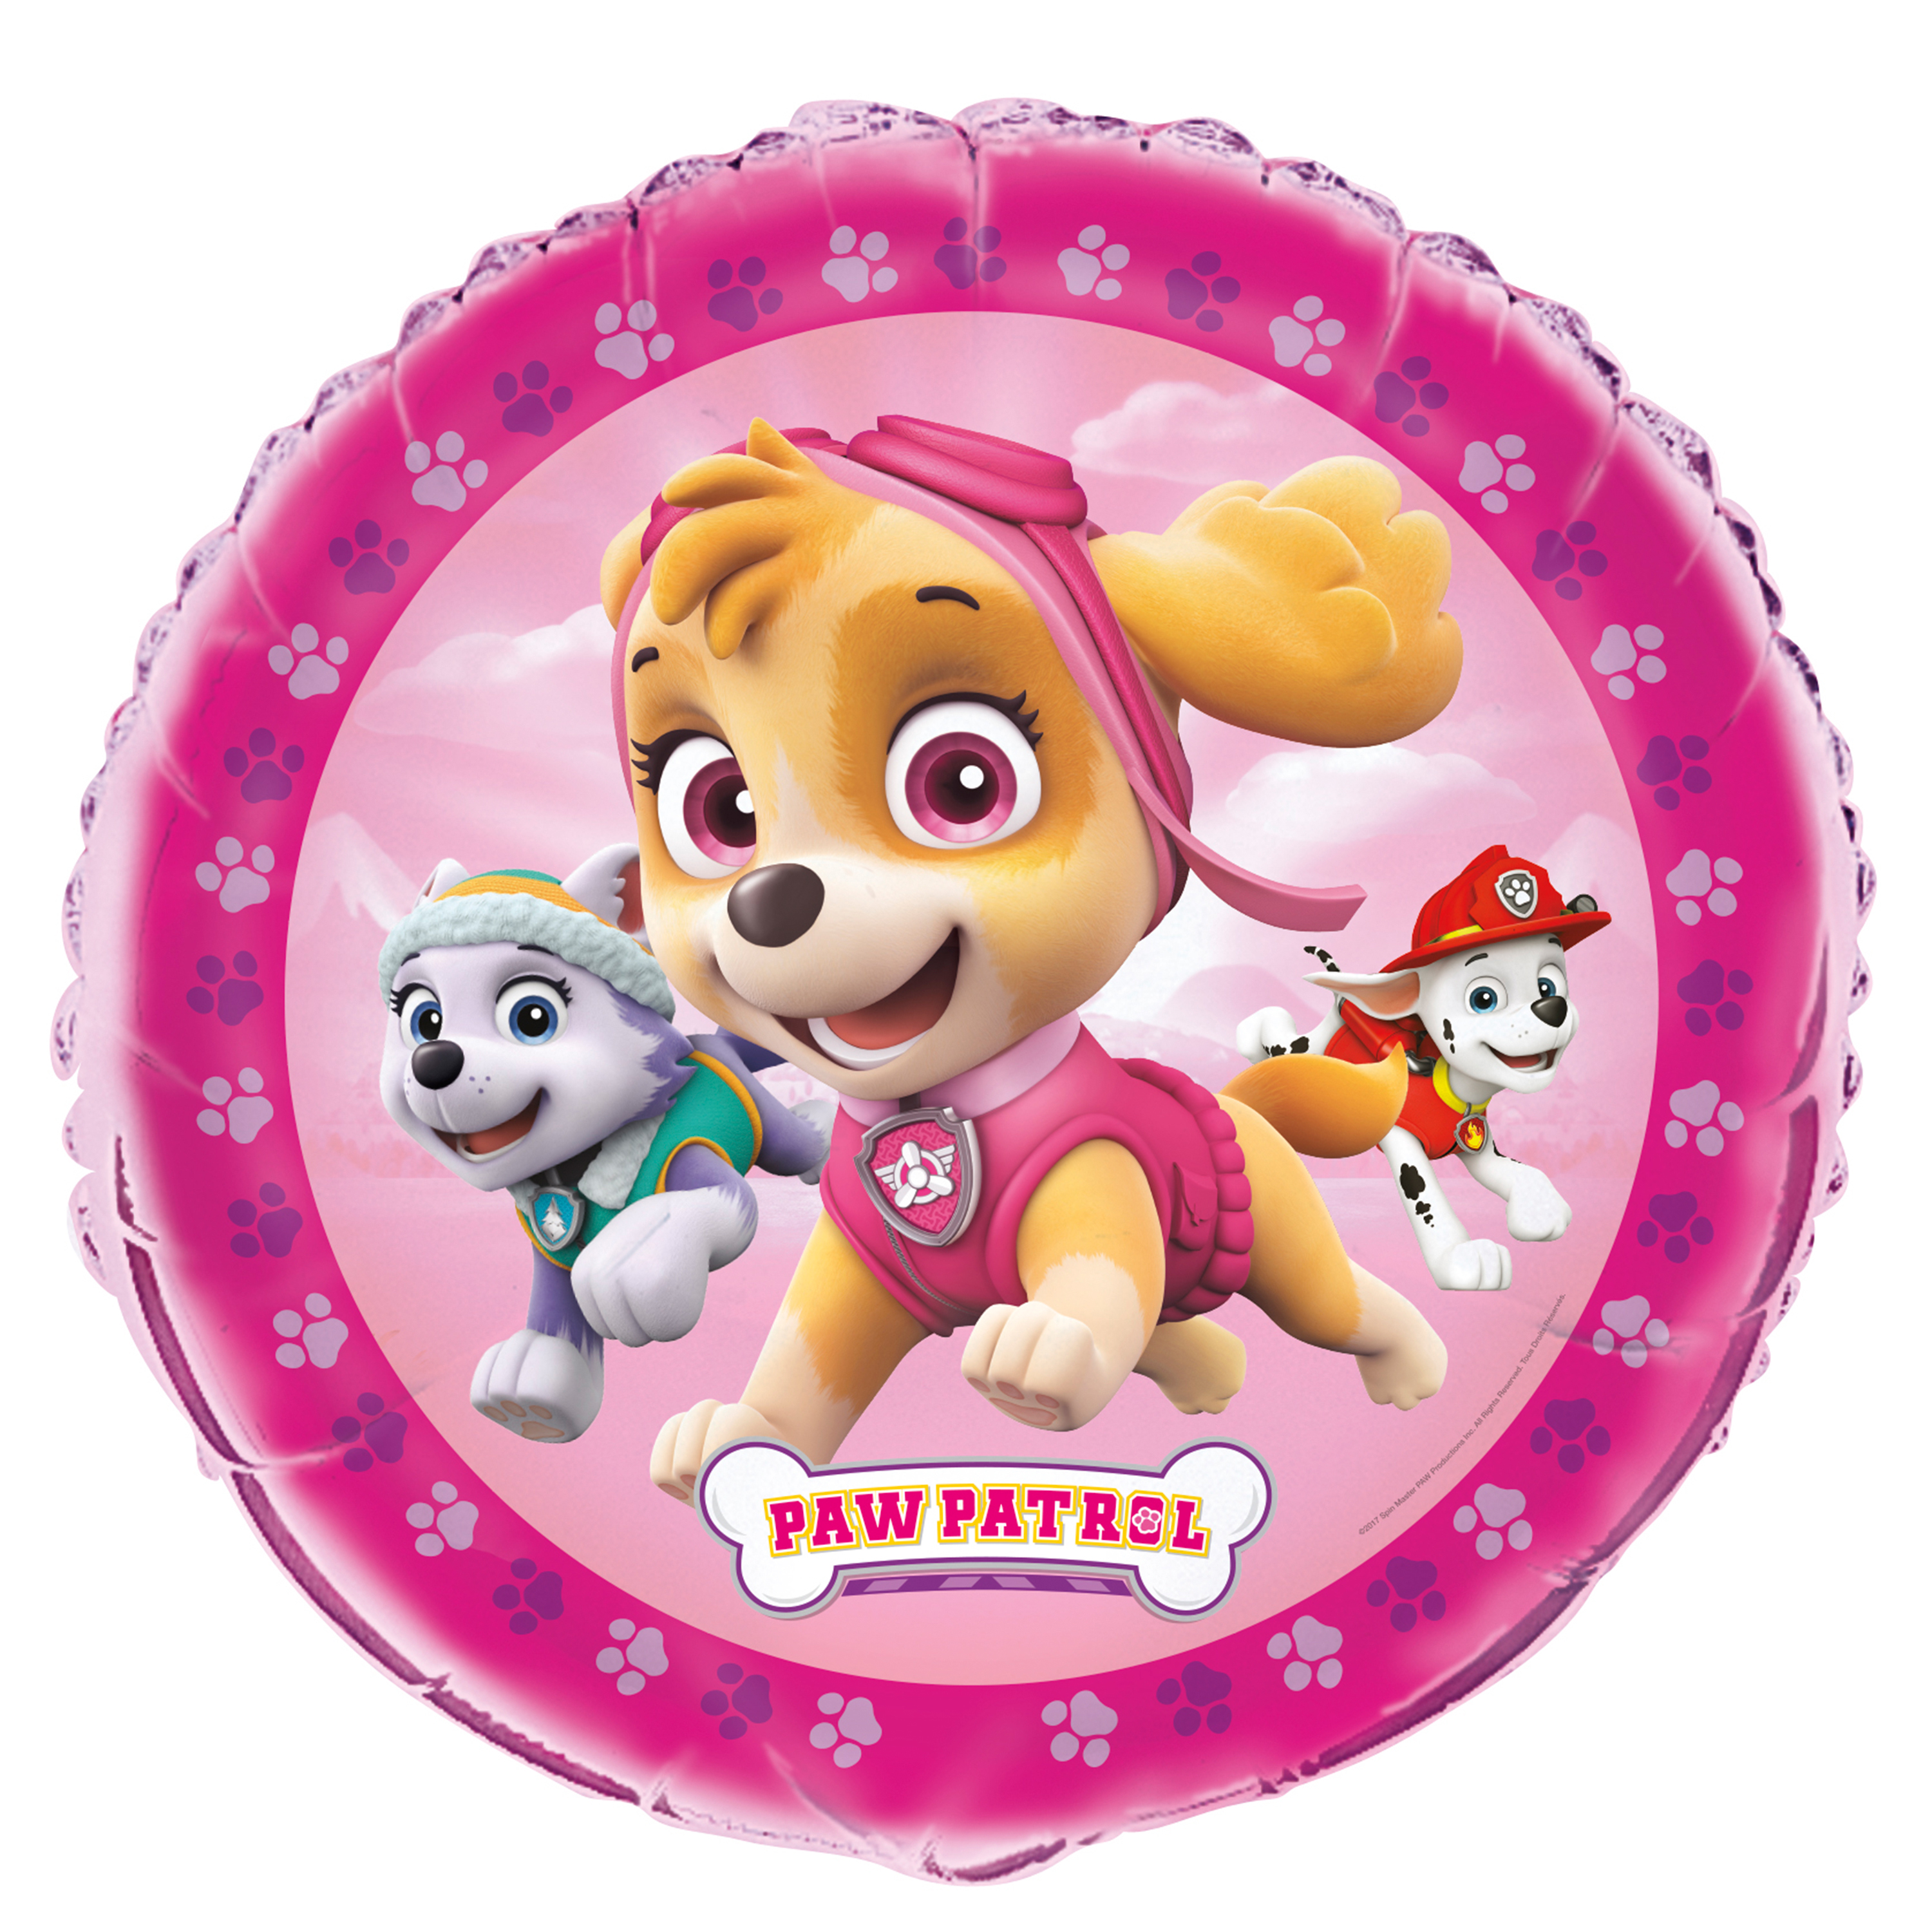 Foil Girl PAW Patrol Balloon, Round, 18 in, 1ct